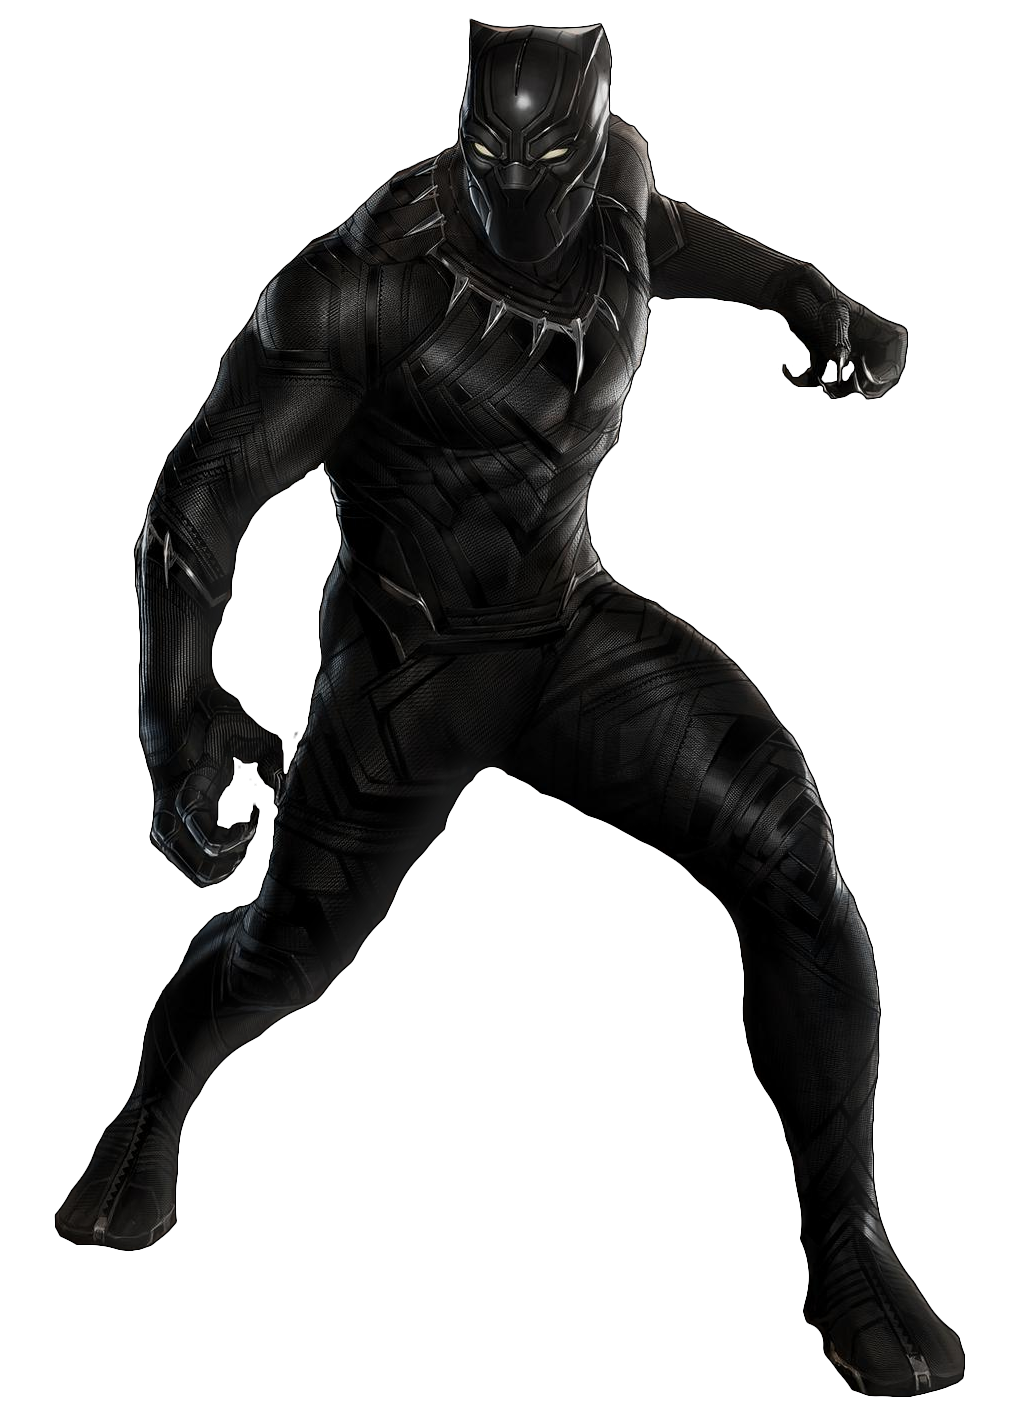 Black panther movie logo png. Image marvel movies fandom